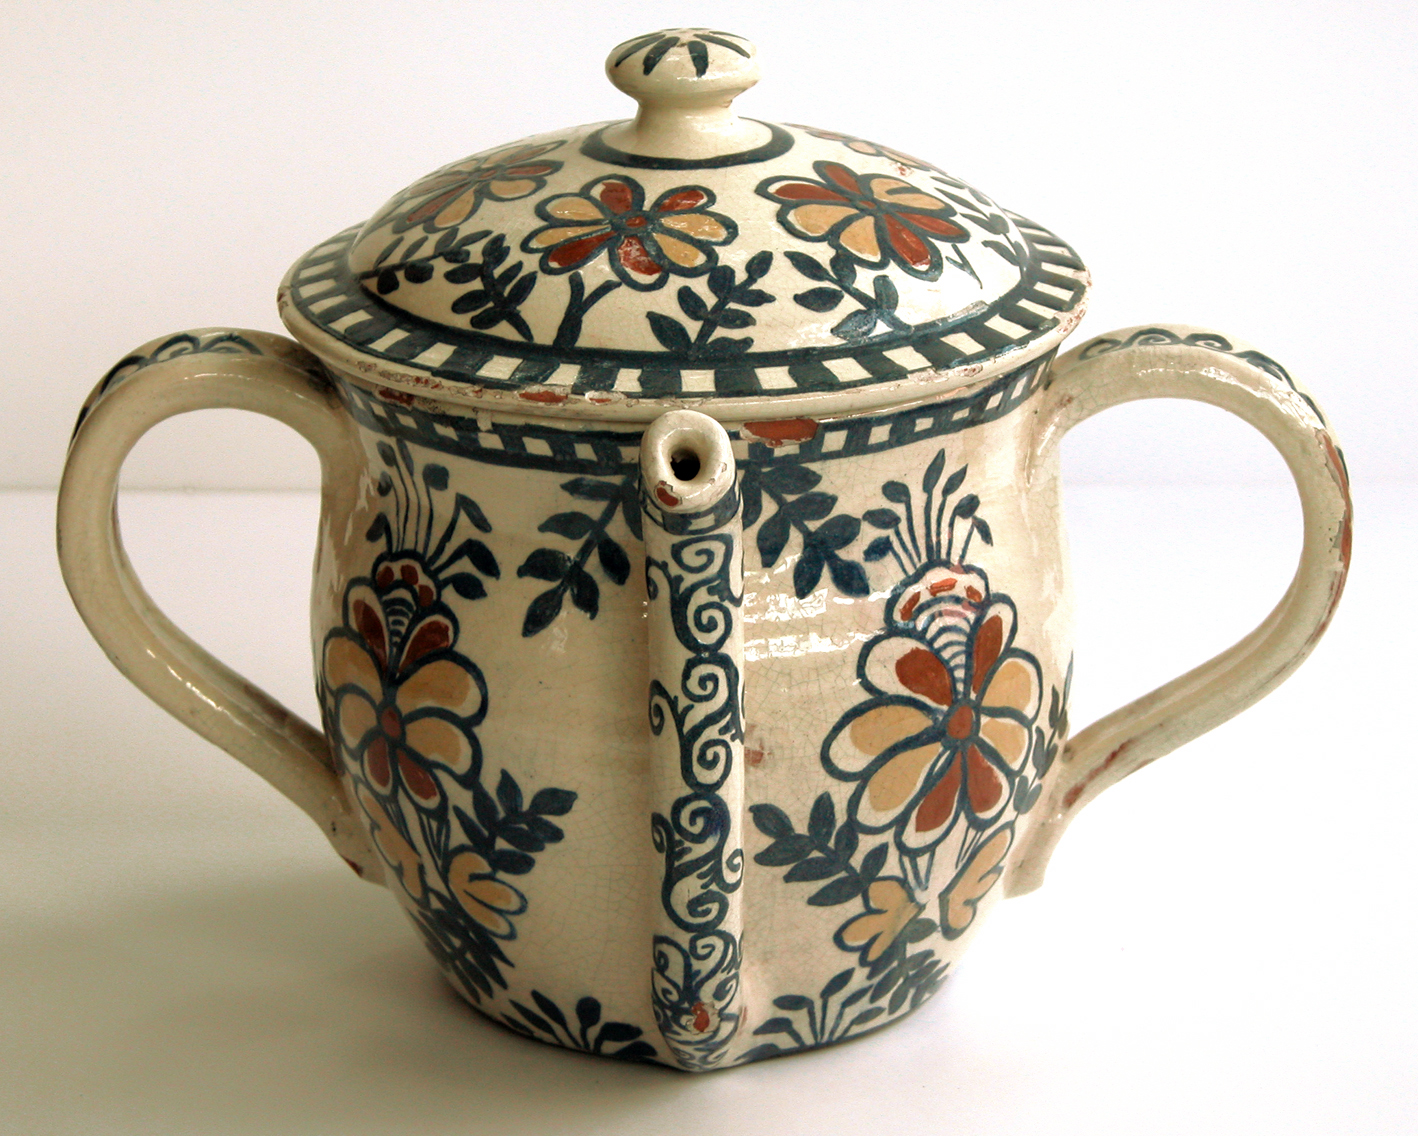 Contemporary Makers: English Delftware by Turtle Creek Pottery